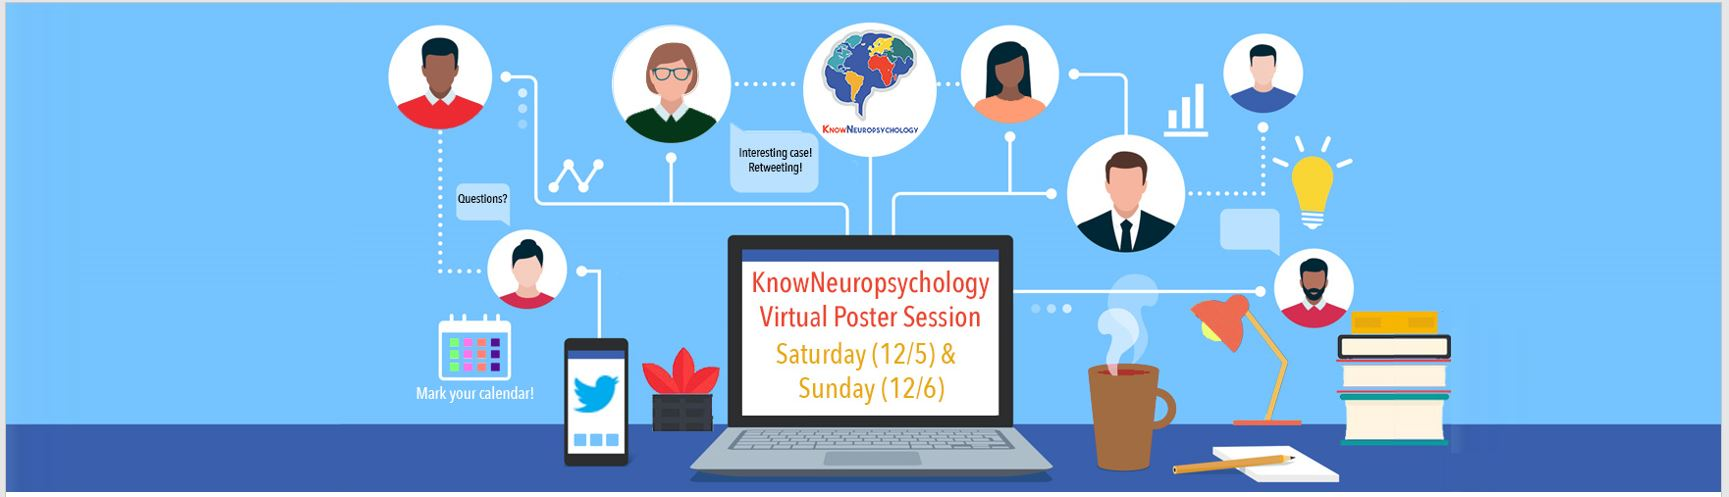 KnowNeuropsychology Poster Session - Held on Twitter 12/5 and 12/6